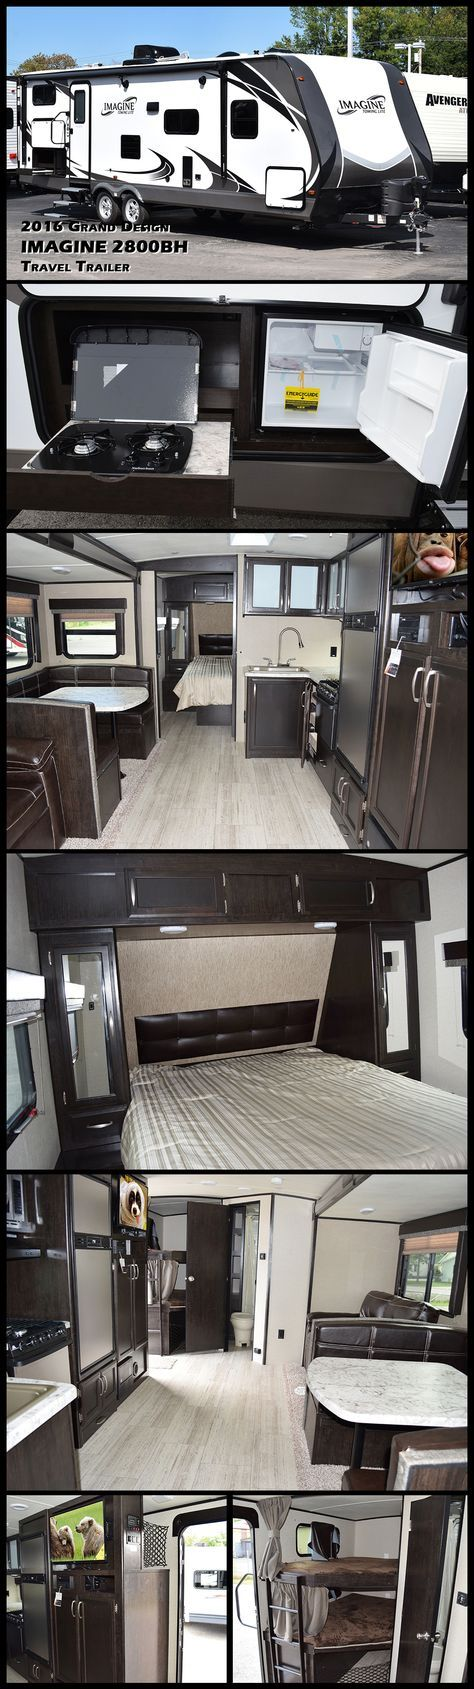 All brands of motor homes class a motorhomes rv business camping pinterest rv motorhome and business